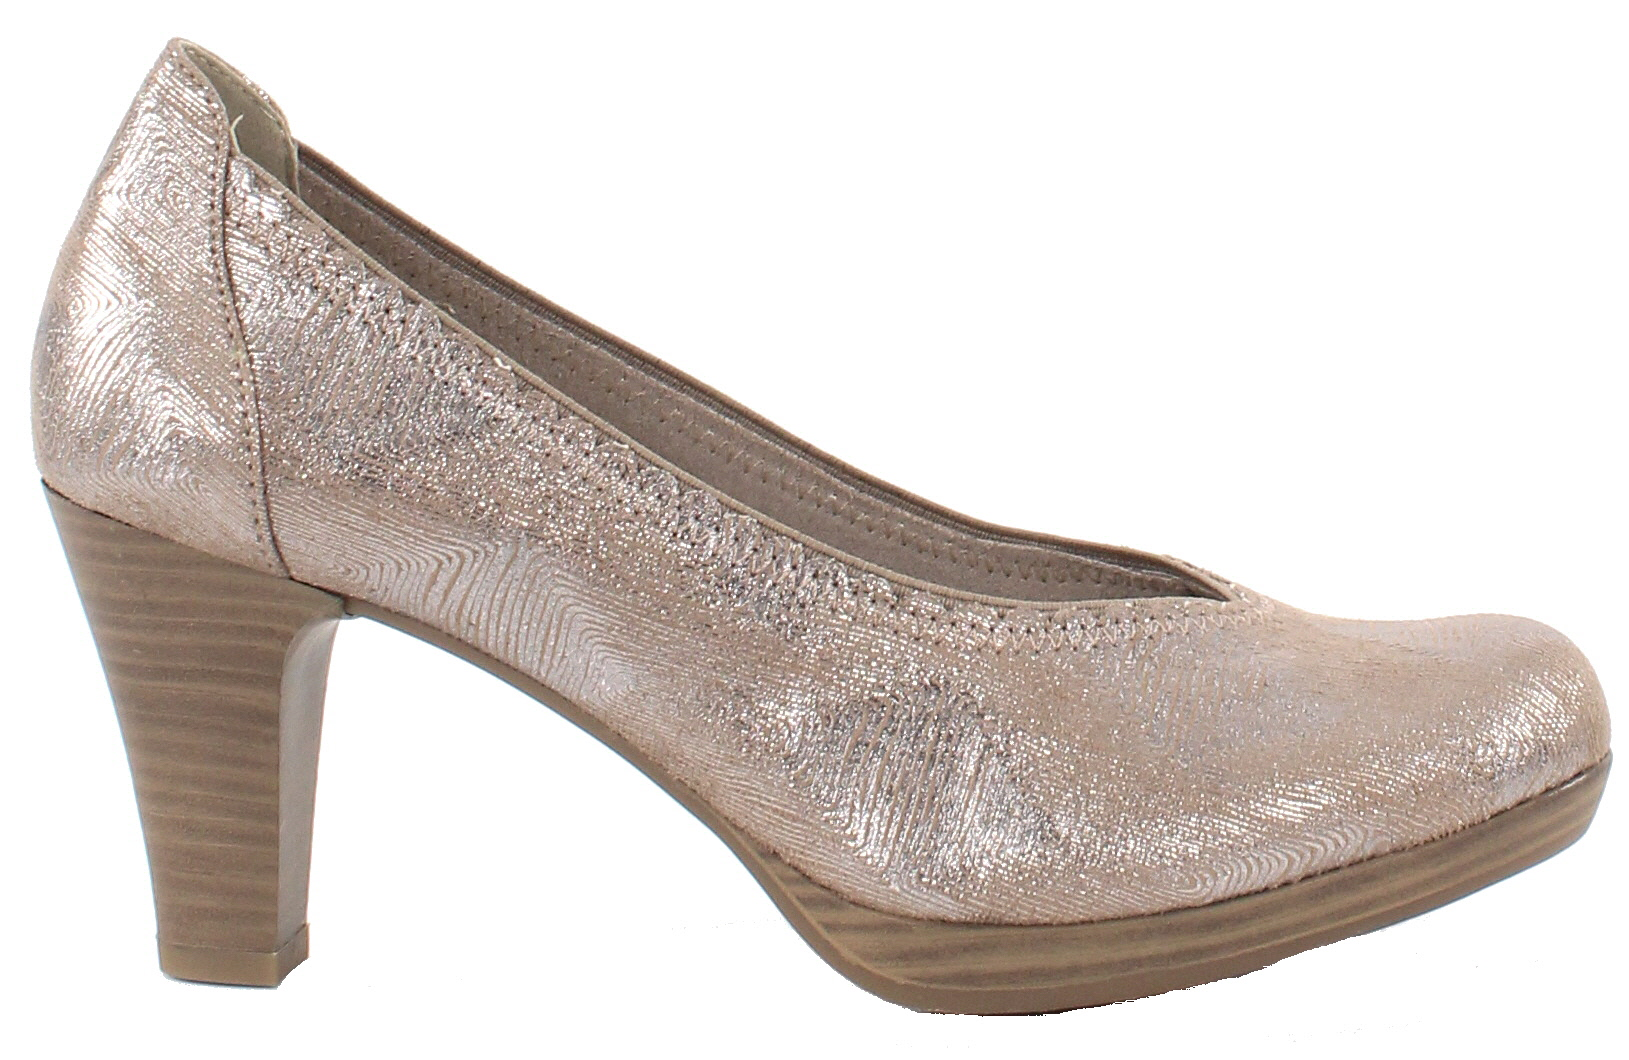 Tamaris Pumps 22448 20 taupe metallic